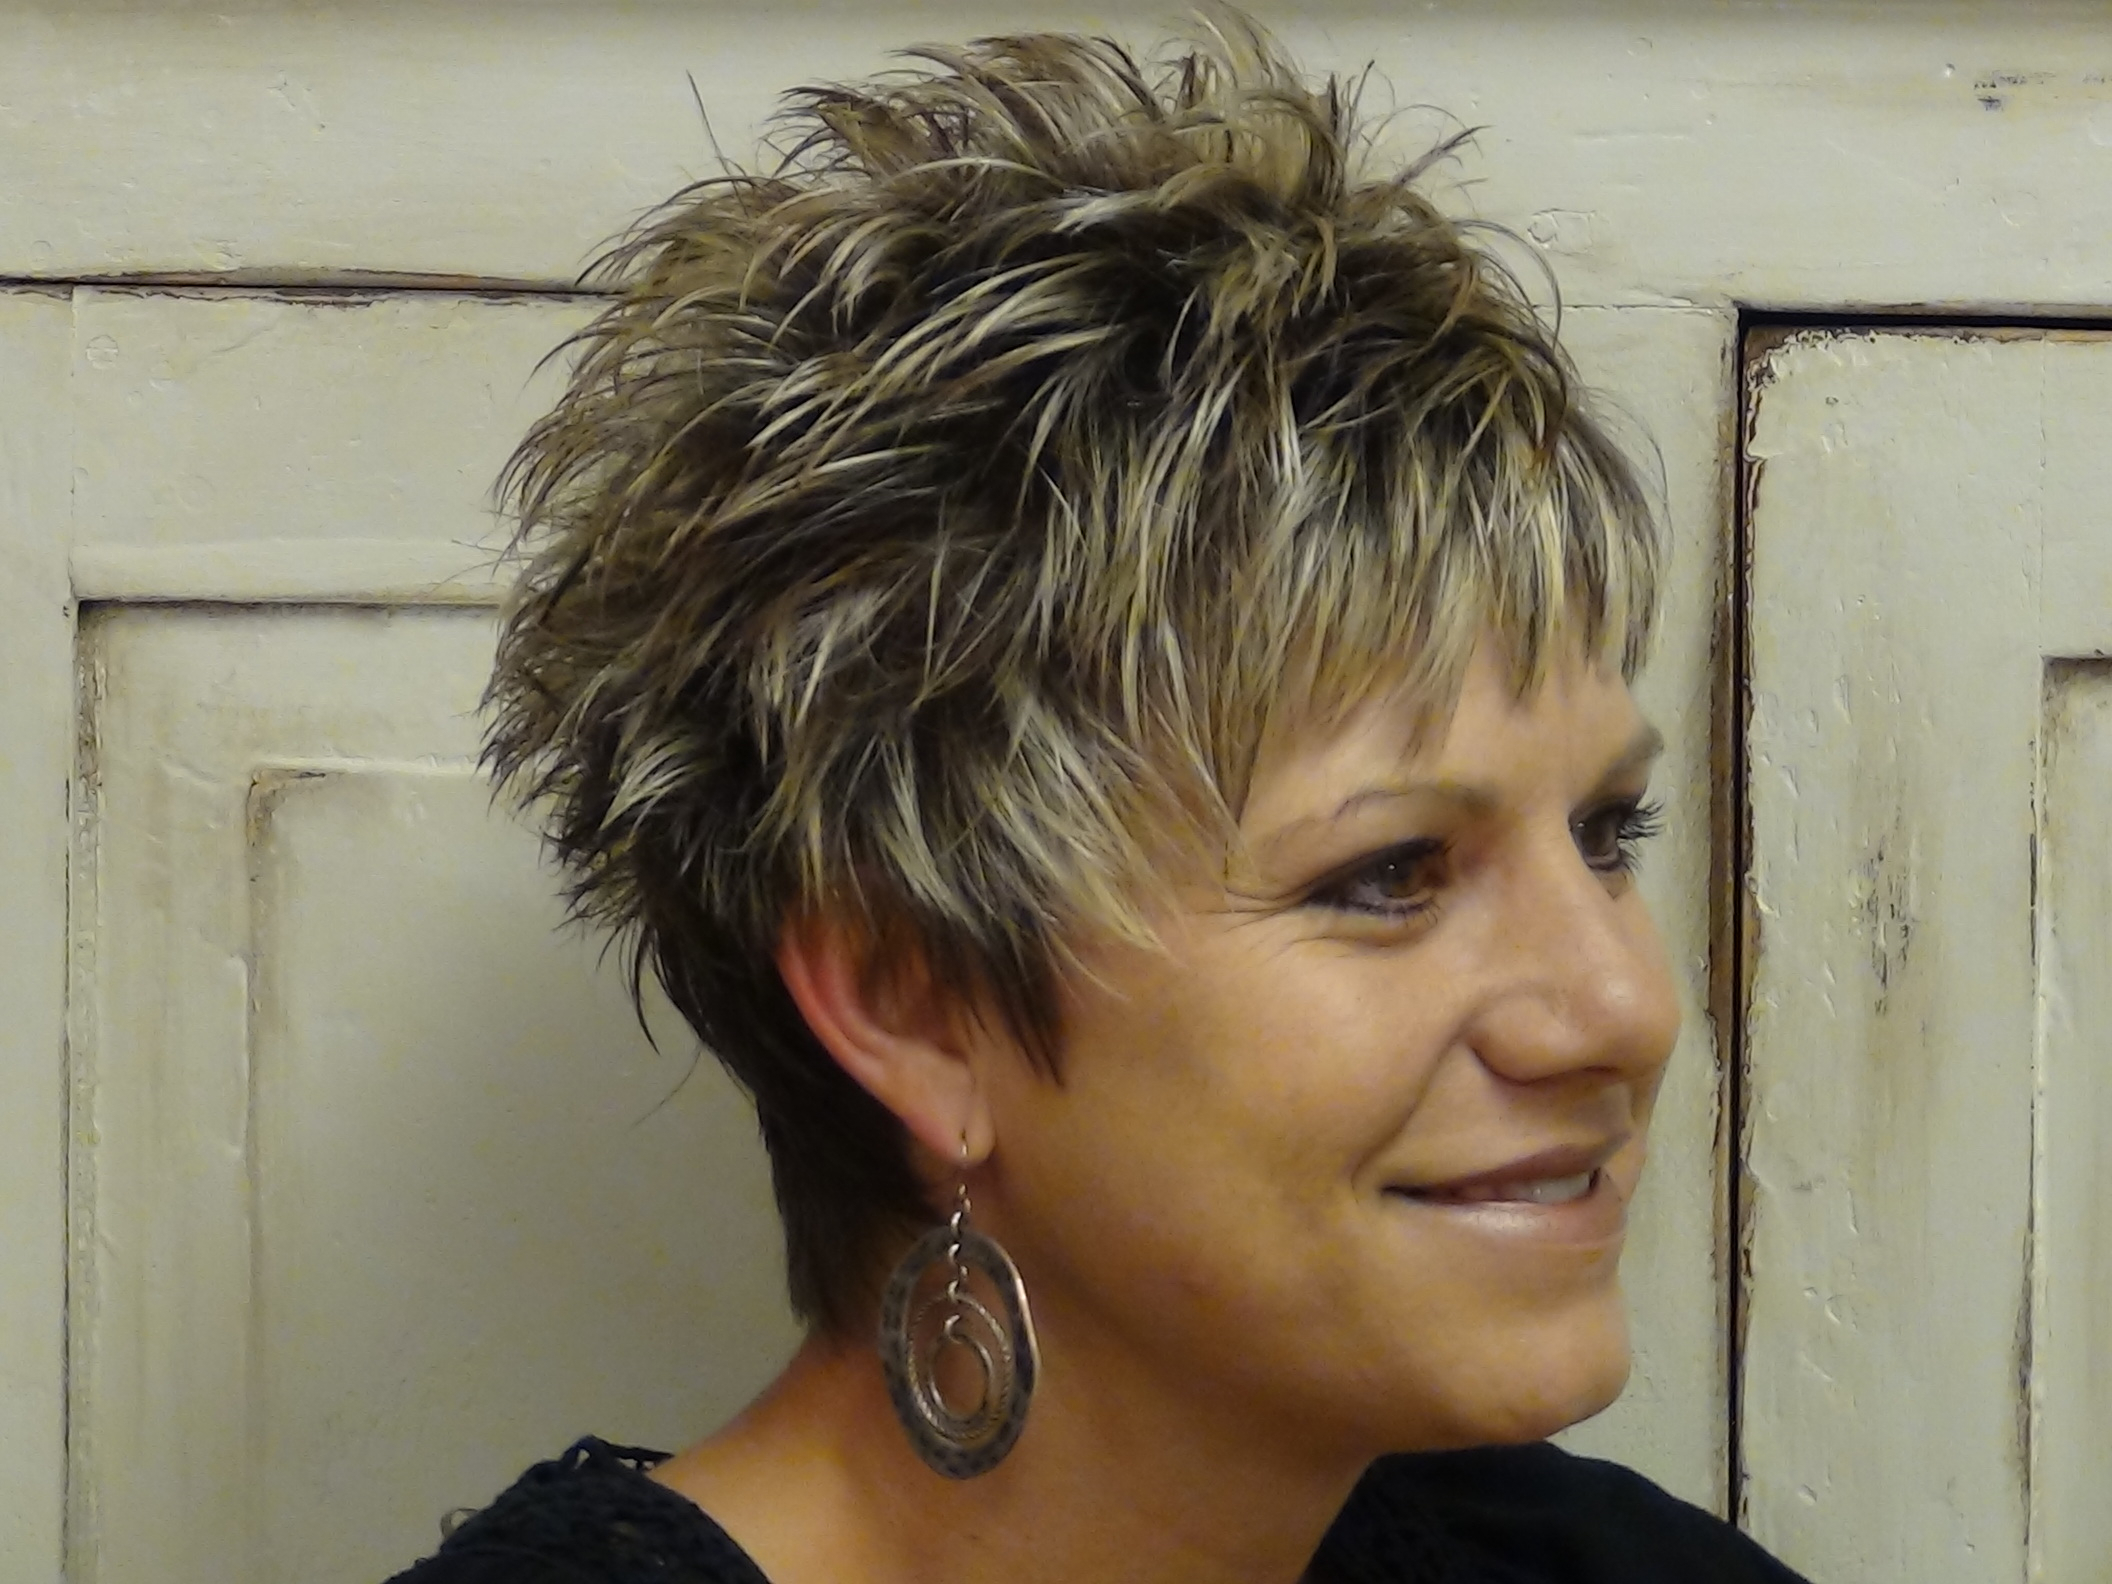 Short Hairstyles For 50 Year Old – Hairstyle For Women & Man Throughout Short Hairstyles For 50 Year Old Woman (View 7 of 25)